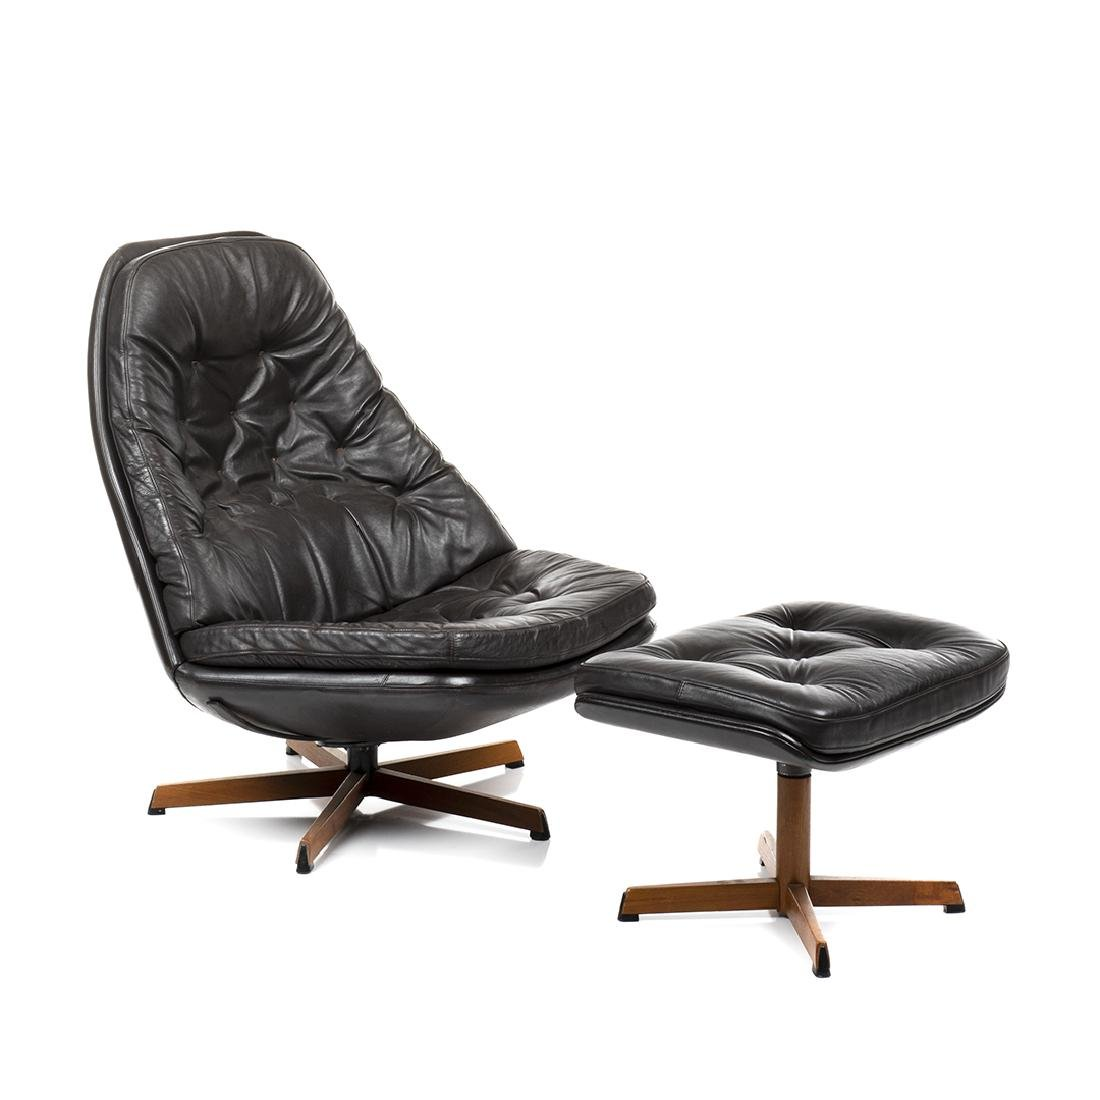 Madsen and Schubell Danish Lounge Chair